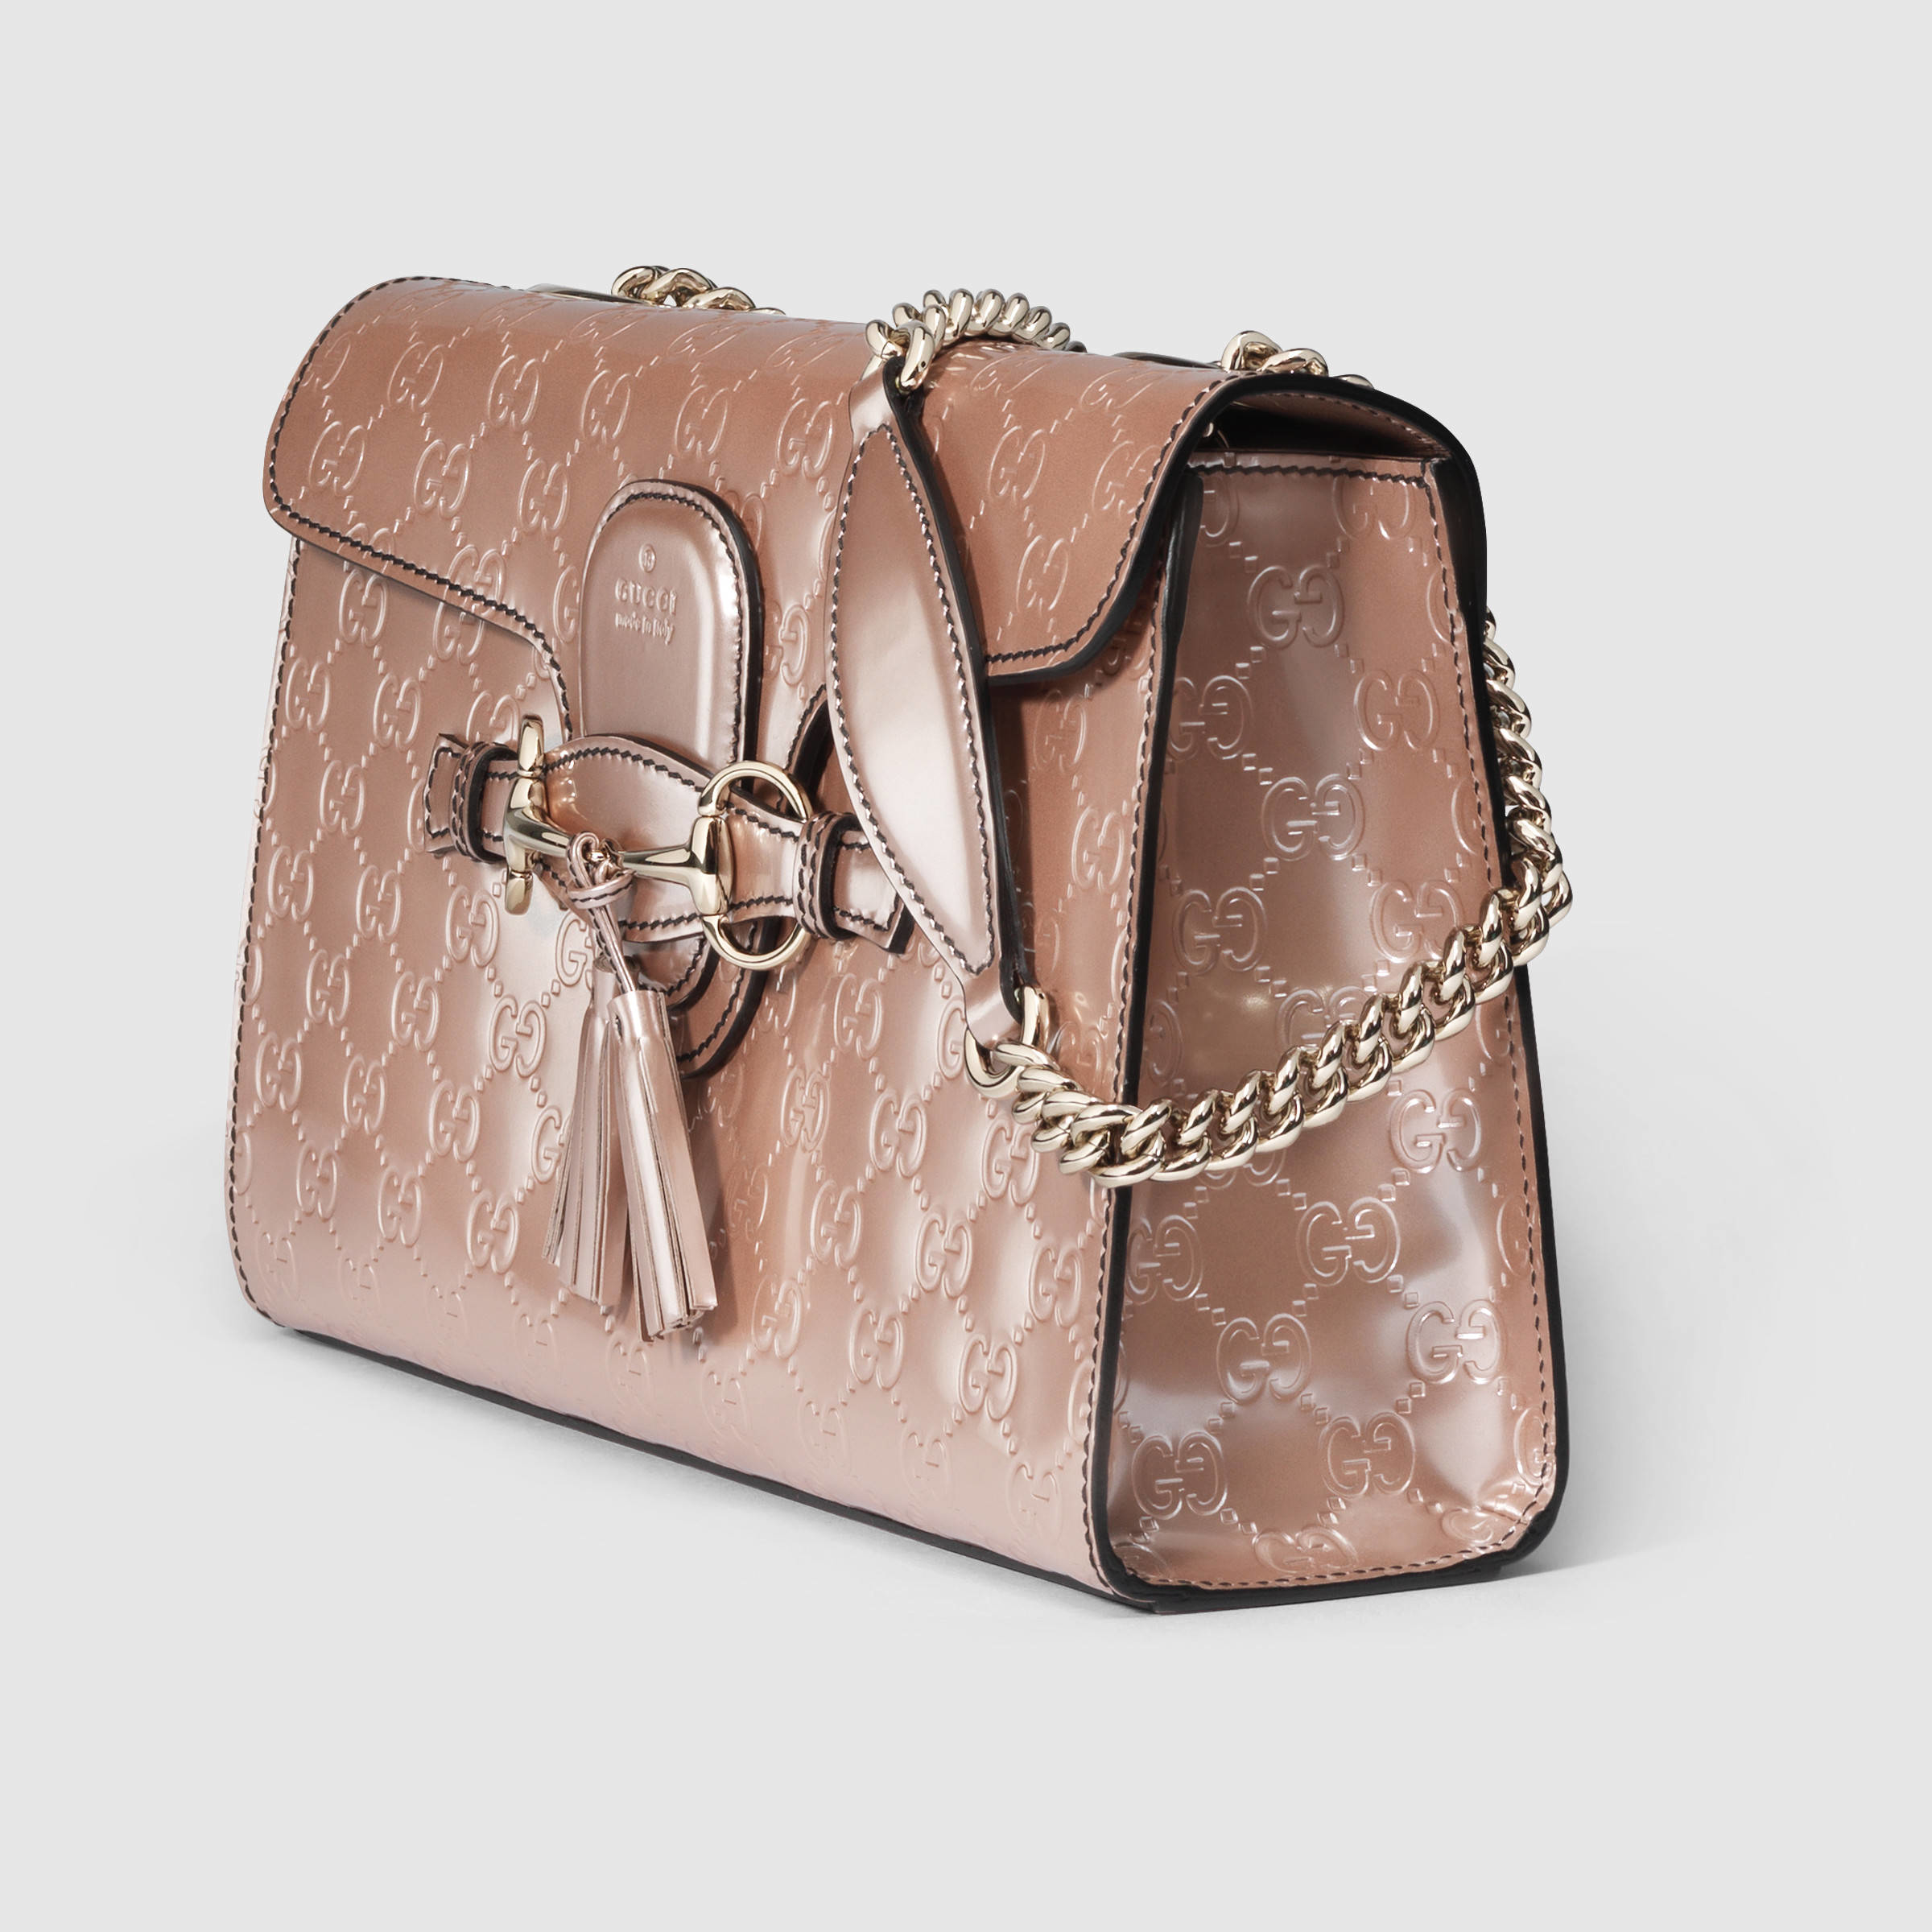 a9aad7e0acd Lyst - Gucci Emily Guccissima Chain Shoulder Bag in Natural